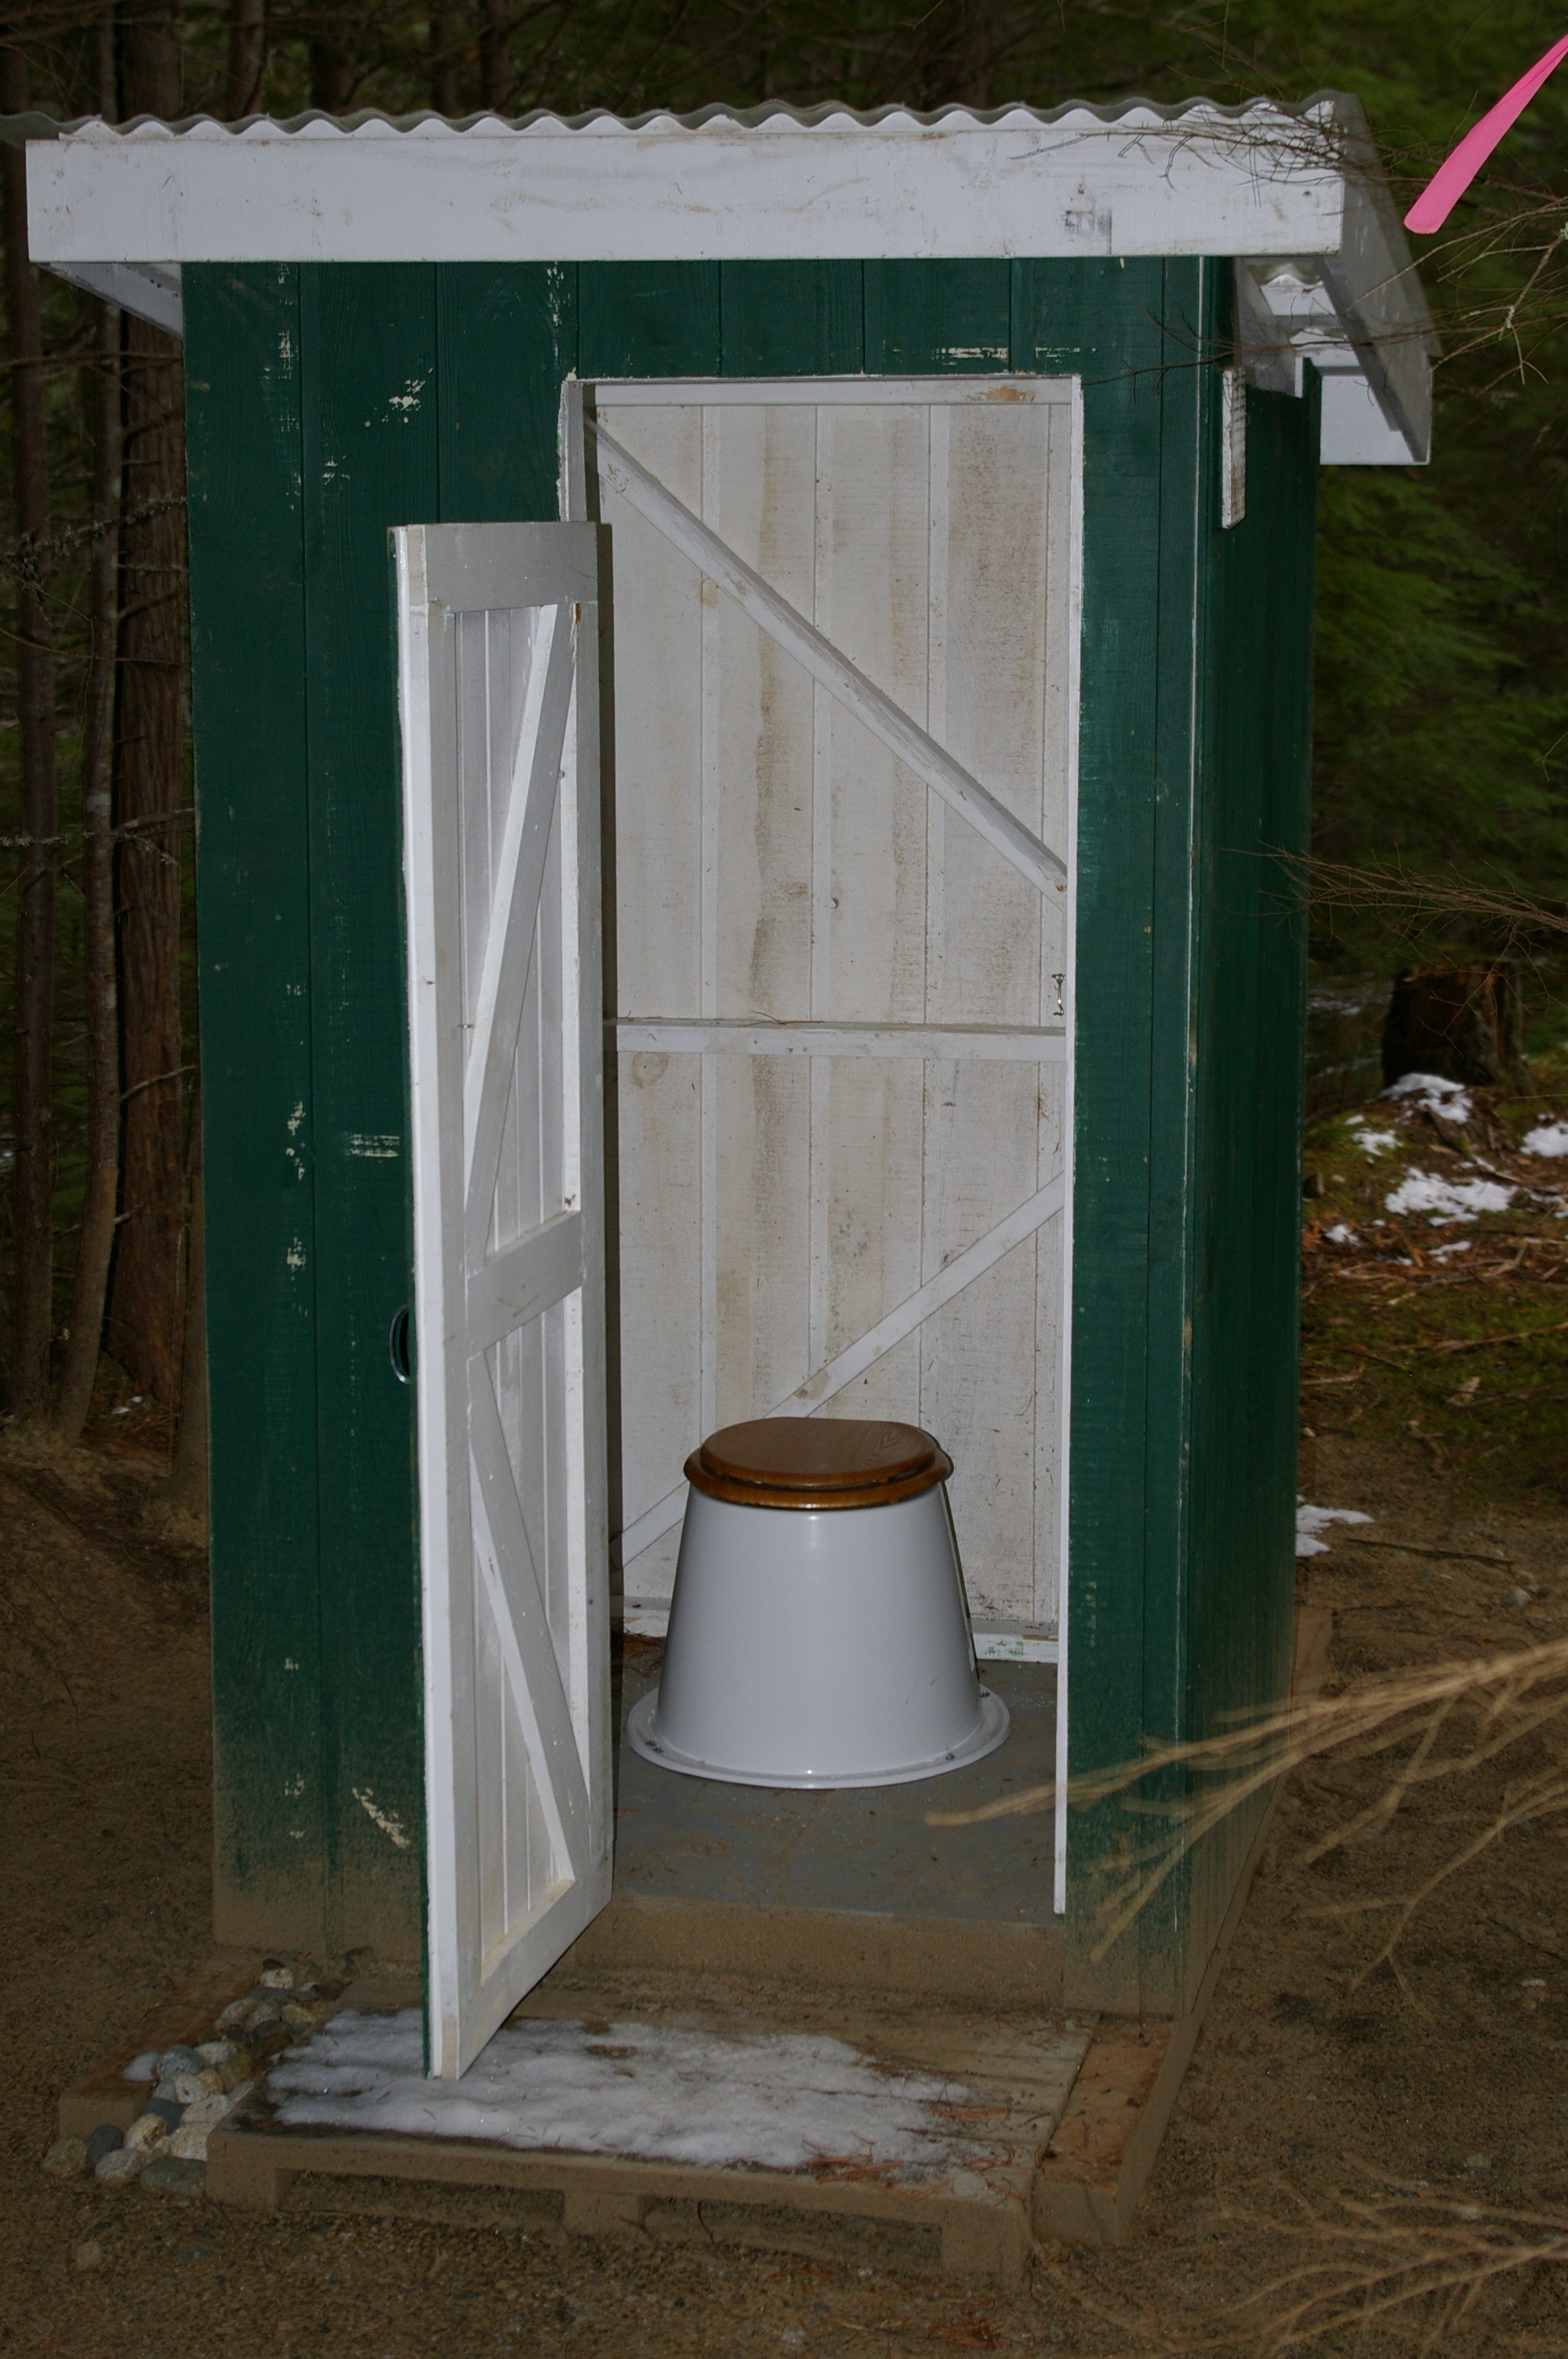 INTERIOR OF THE NEW OUTHOUSES